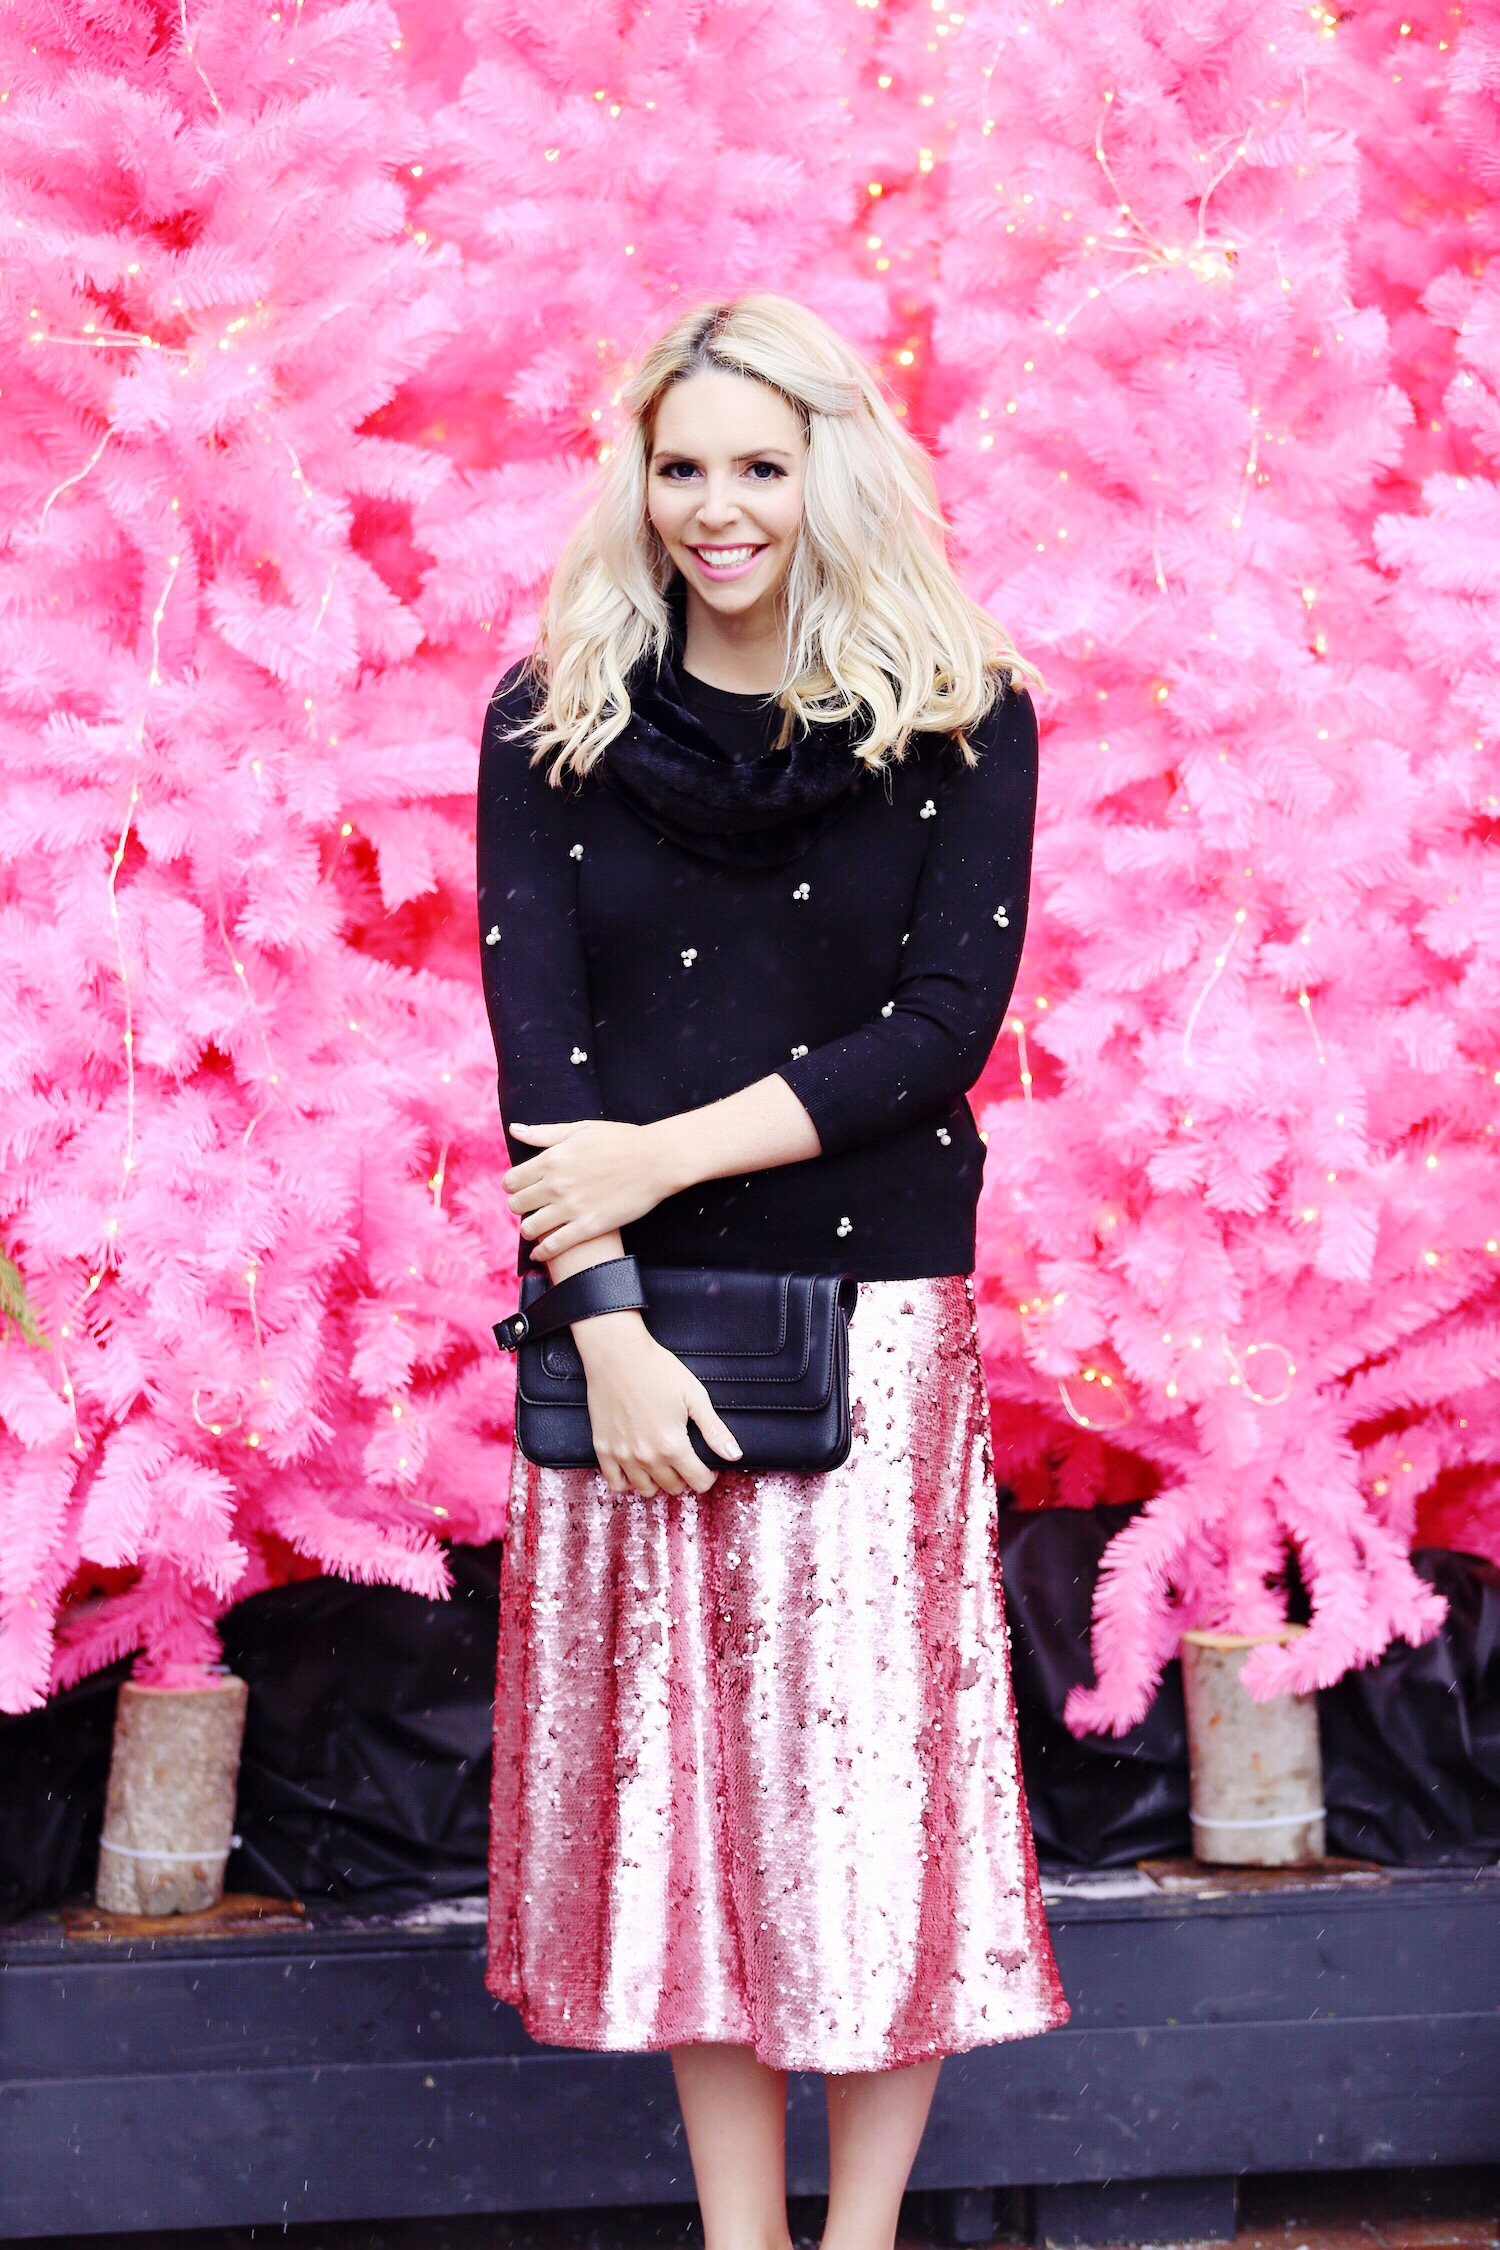 pink-the-town-amanda-losier-7